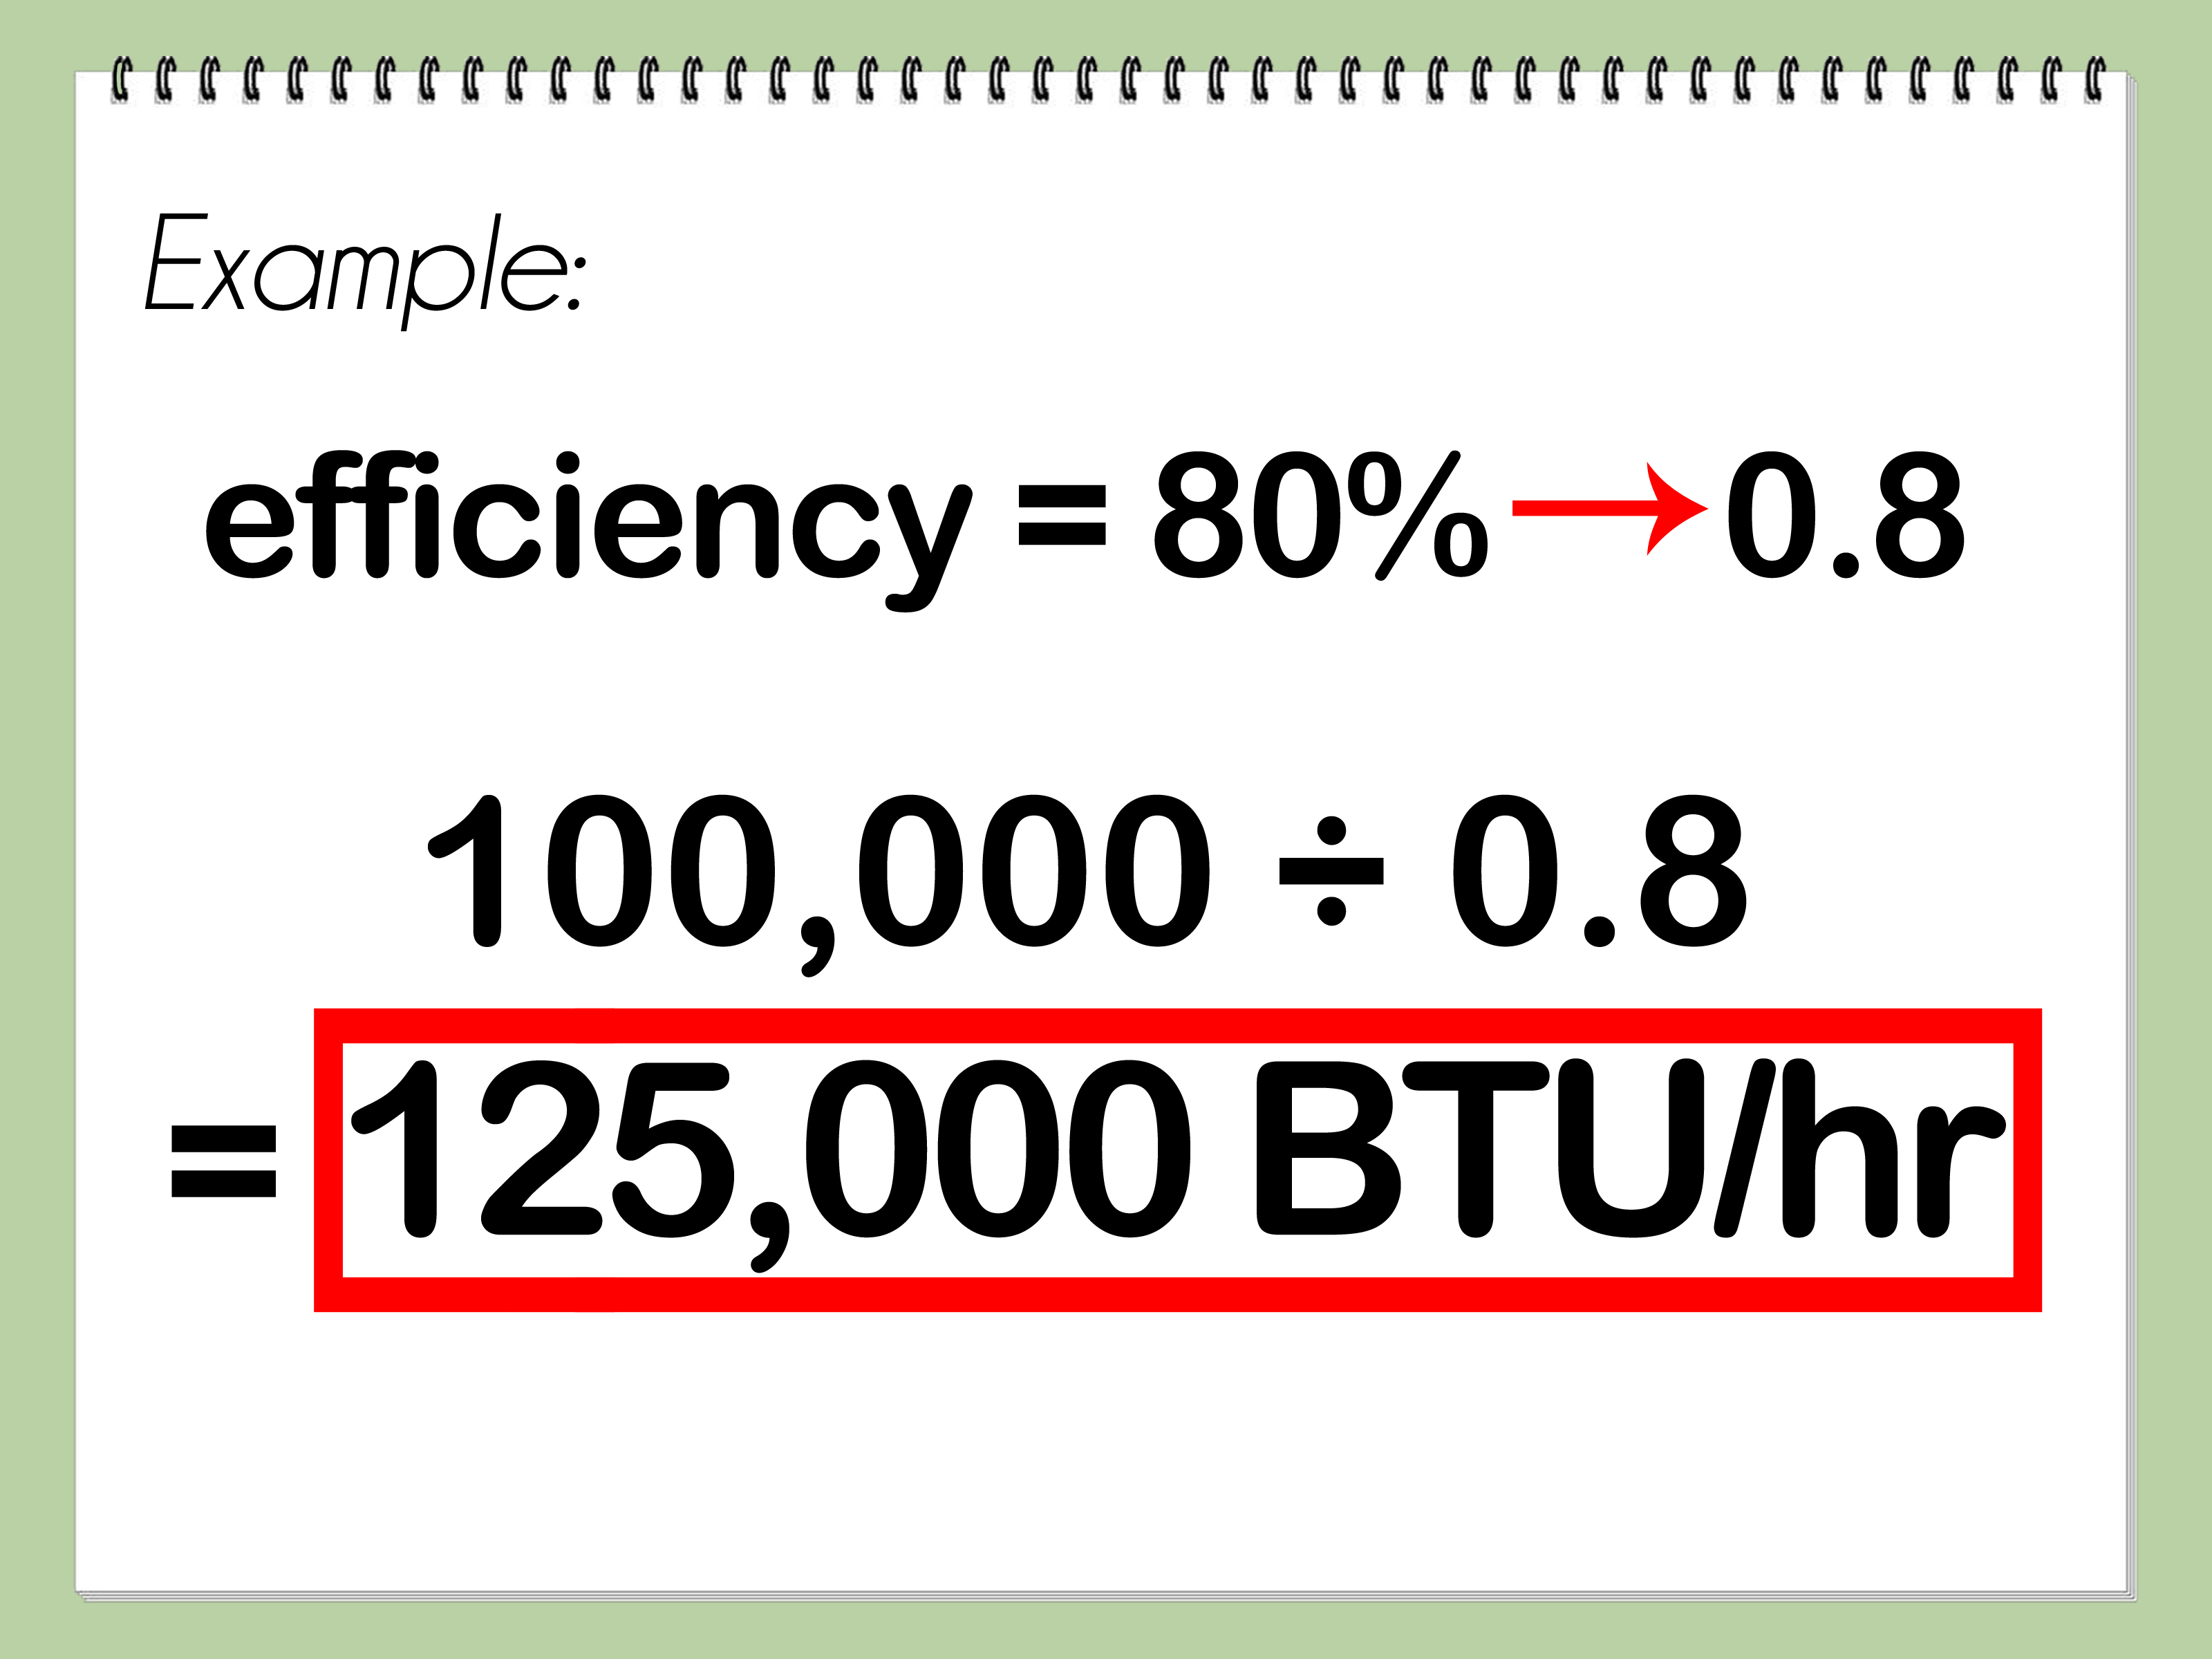 Home Air Conditioning Btu Calculator